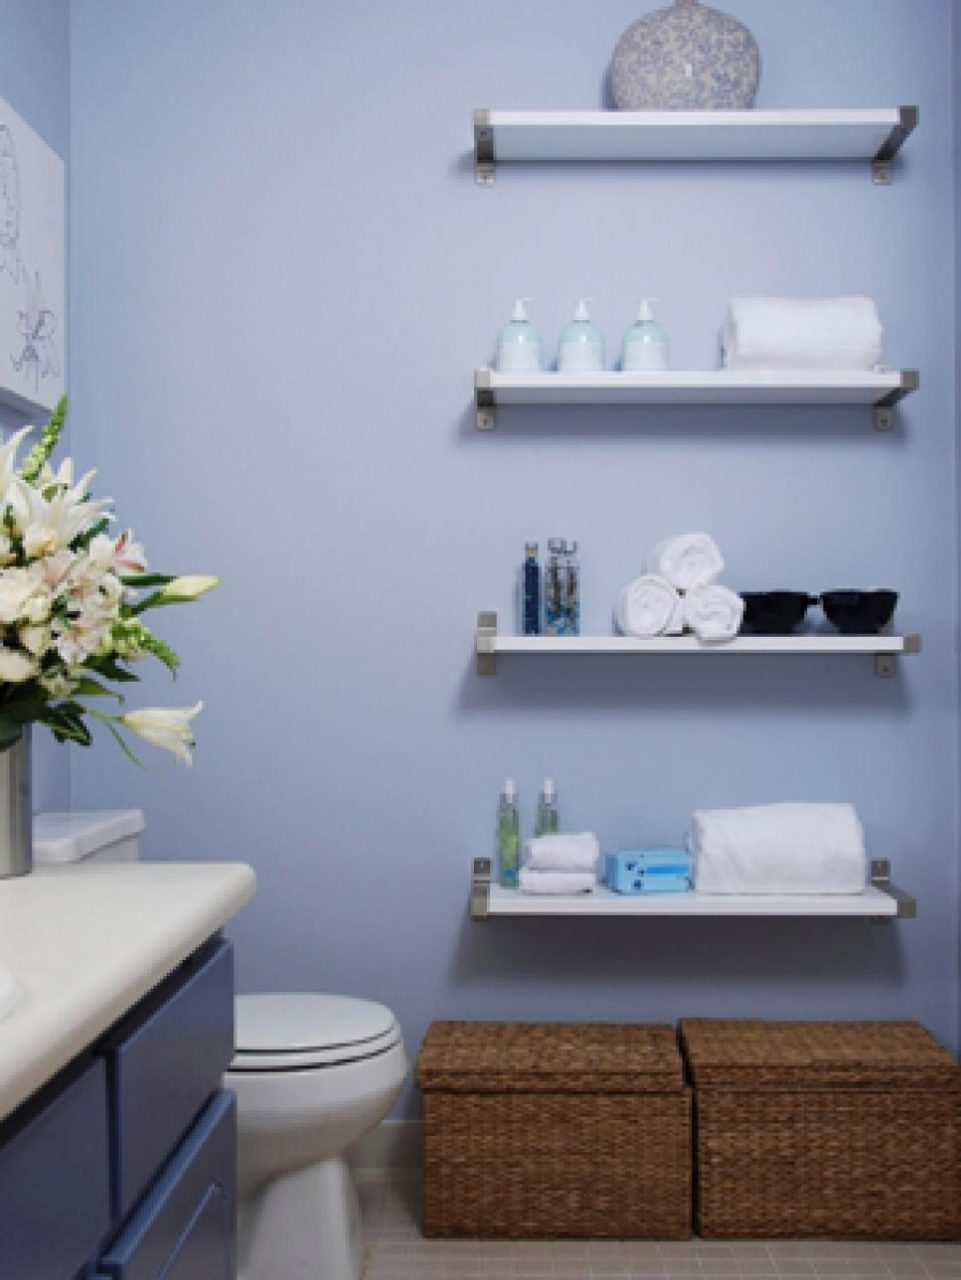 Decorating Small Bathroom Shelves Bathroom Decoration Ideas